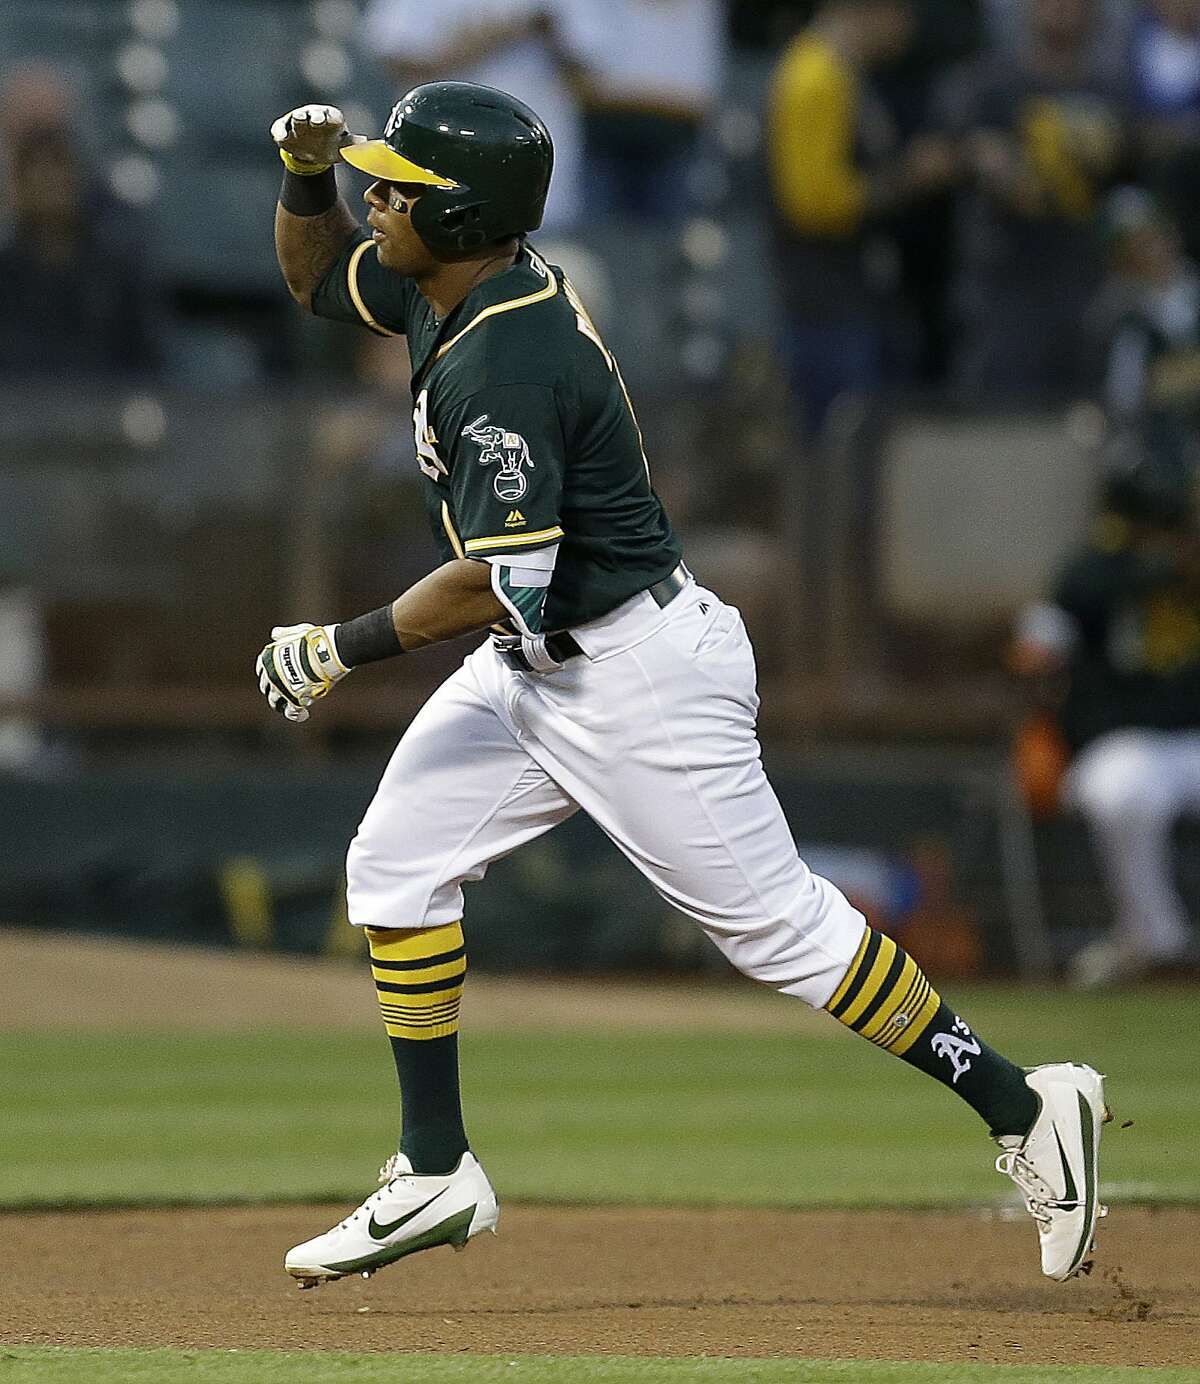 Oakland Athletics' Khris Davis celebrates after hitting a home run off Tampa Bay Rays' Jake Odorizzi during the fourth inning of a baseball game Monday, July 17, 2017, in Oakland, Calif. (AP Photo/Ben Margot)